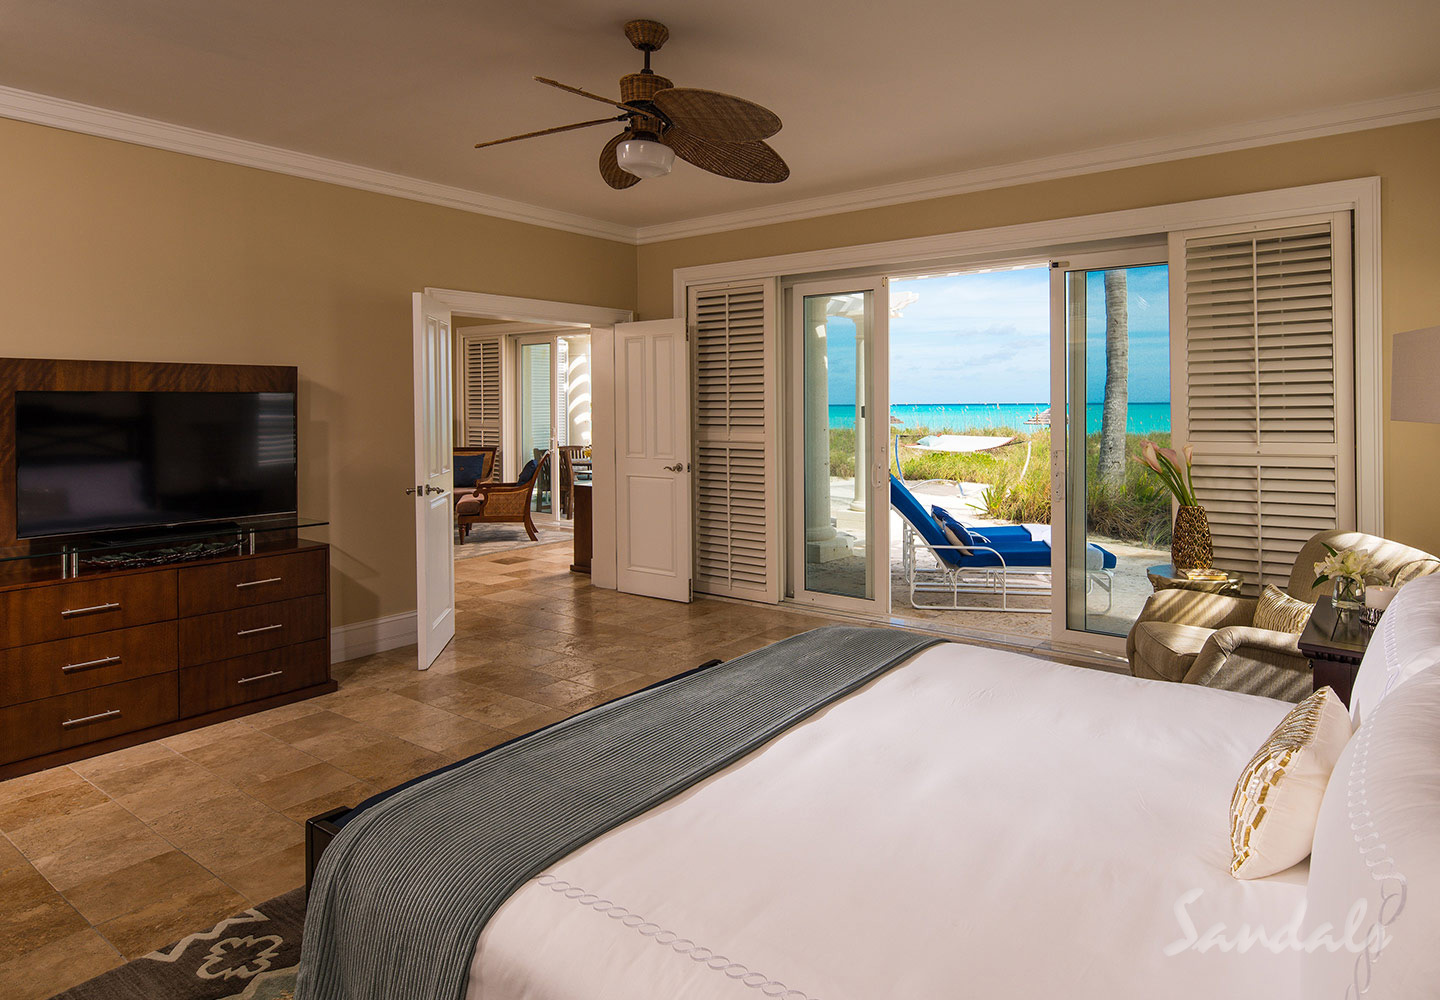 Travel Agency All-Inclusive Resort Sandals Emerald Bay 127